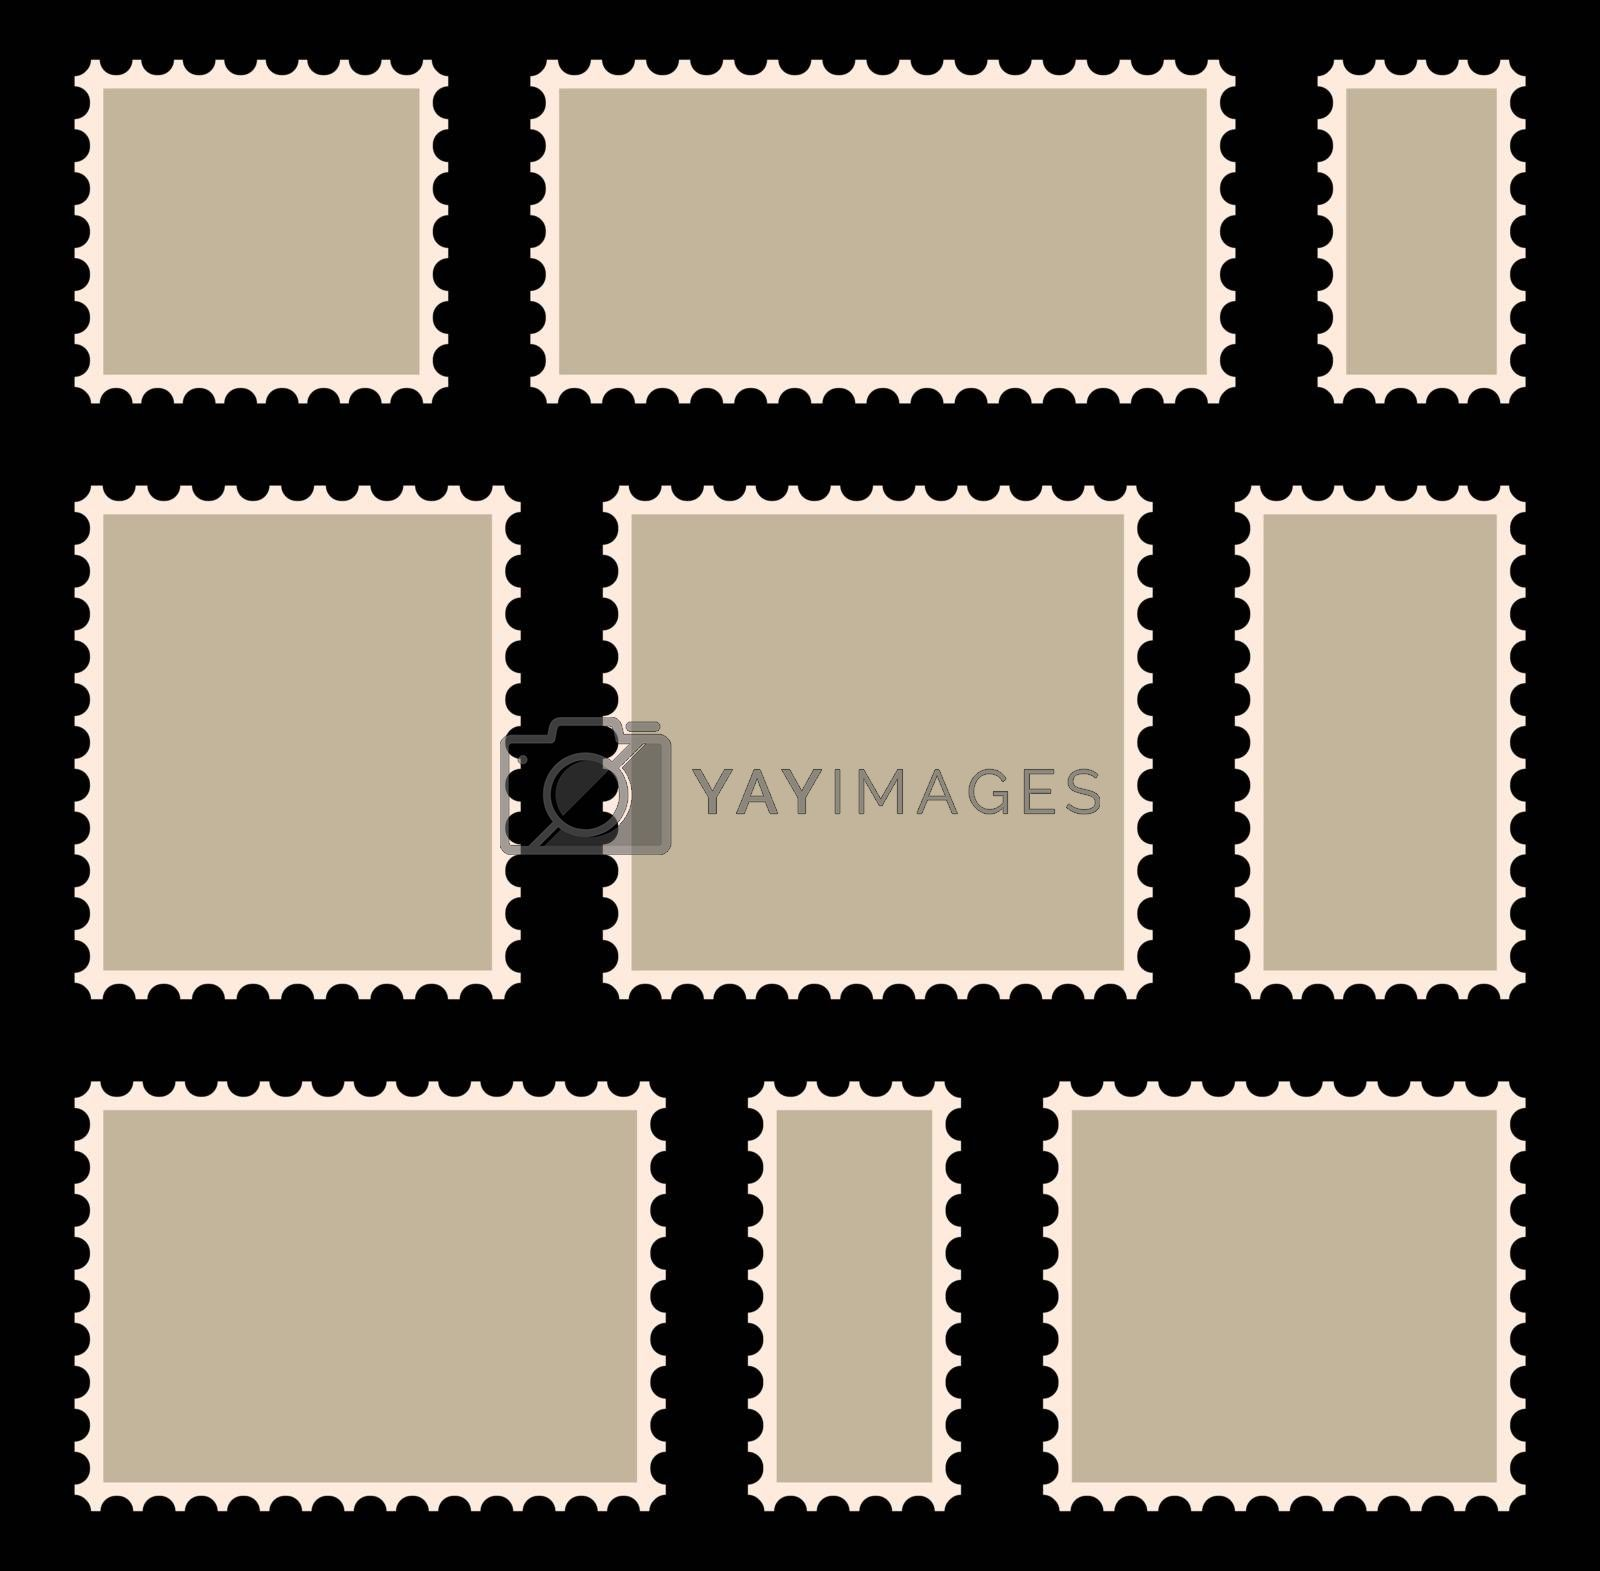 Postal stamp frame or border set with copyspace. Blank, beige postage marks collection. Retro letter label with perforated edge. Clipart illustration of empty envelope or postcard sticker template.